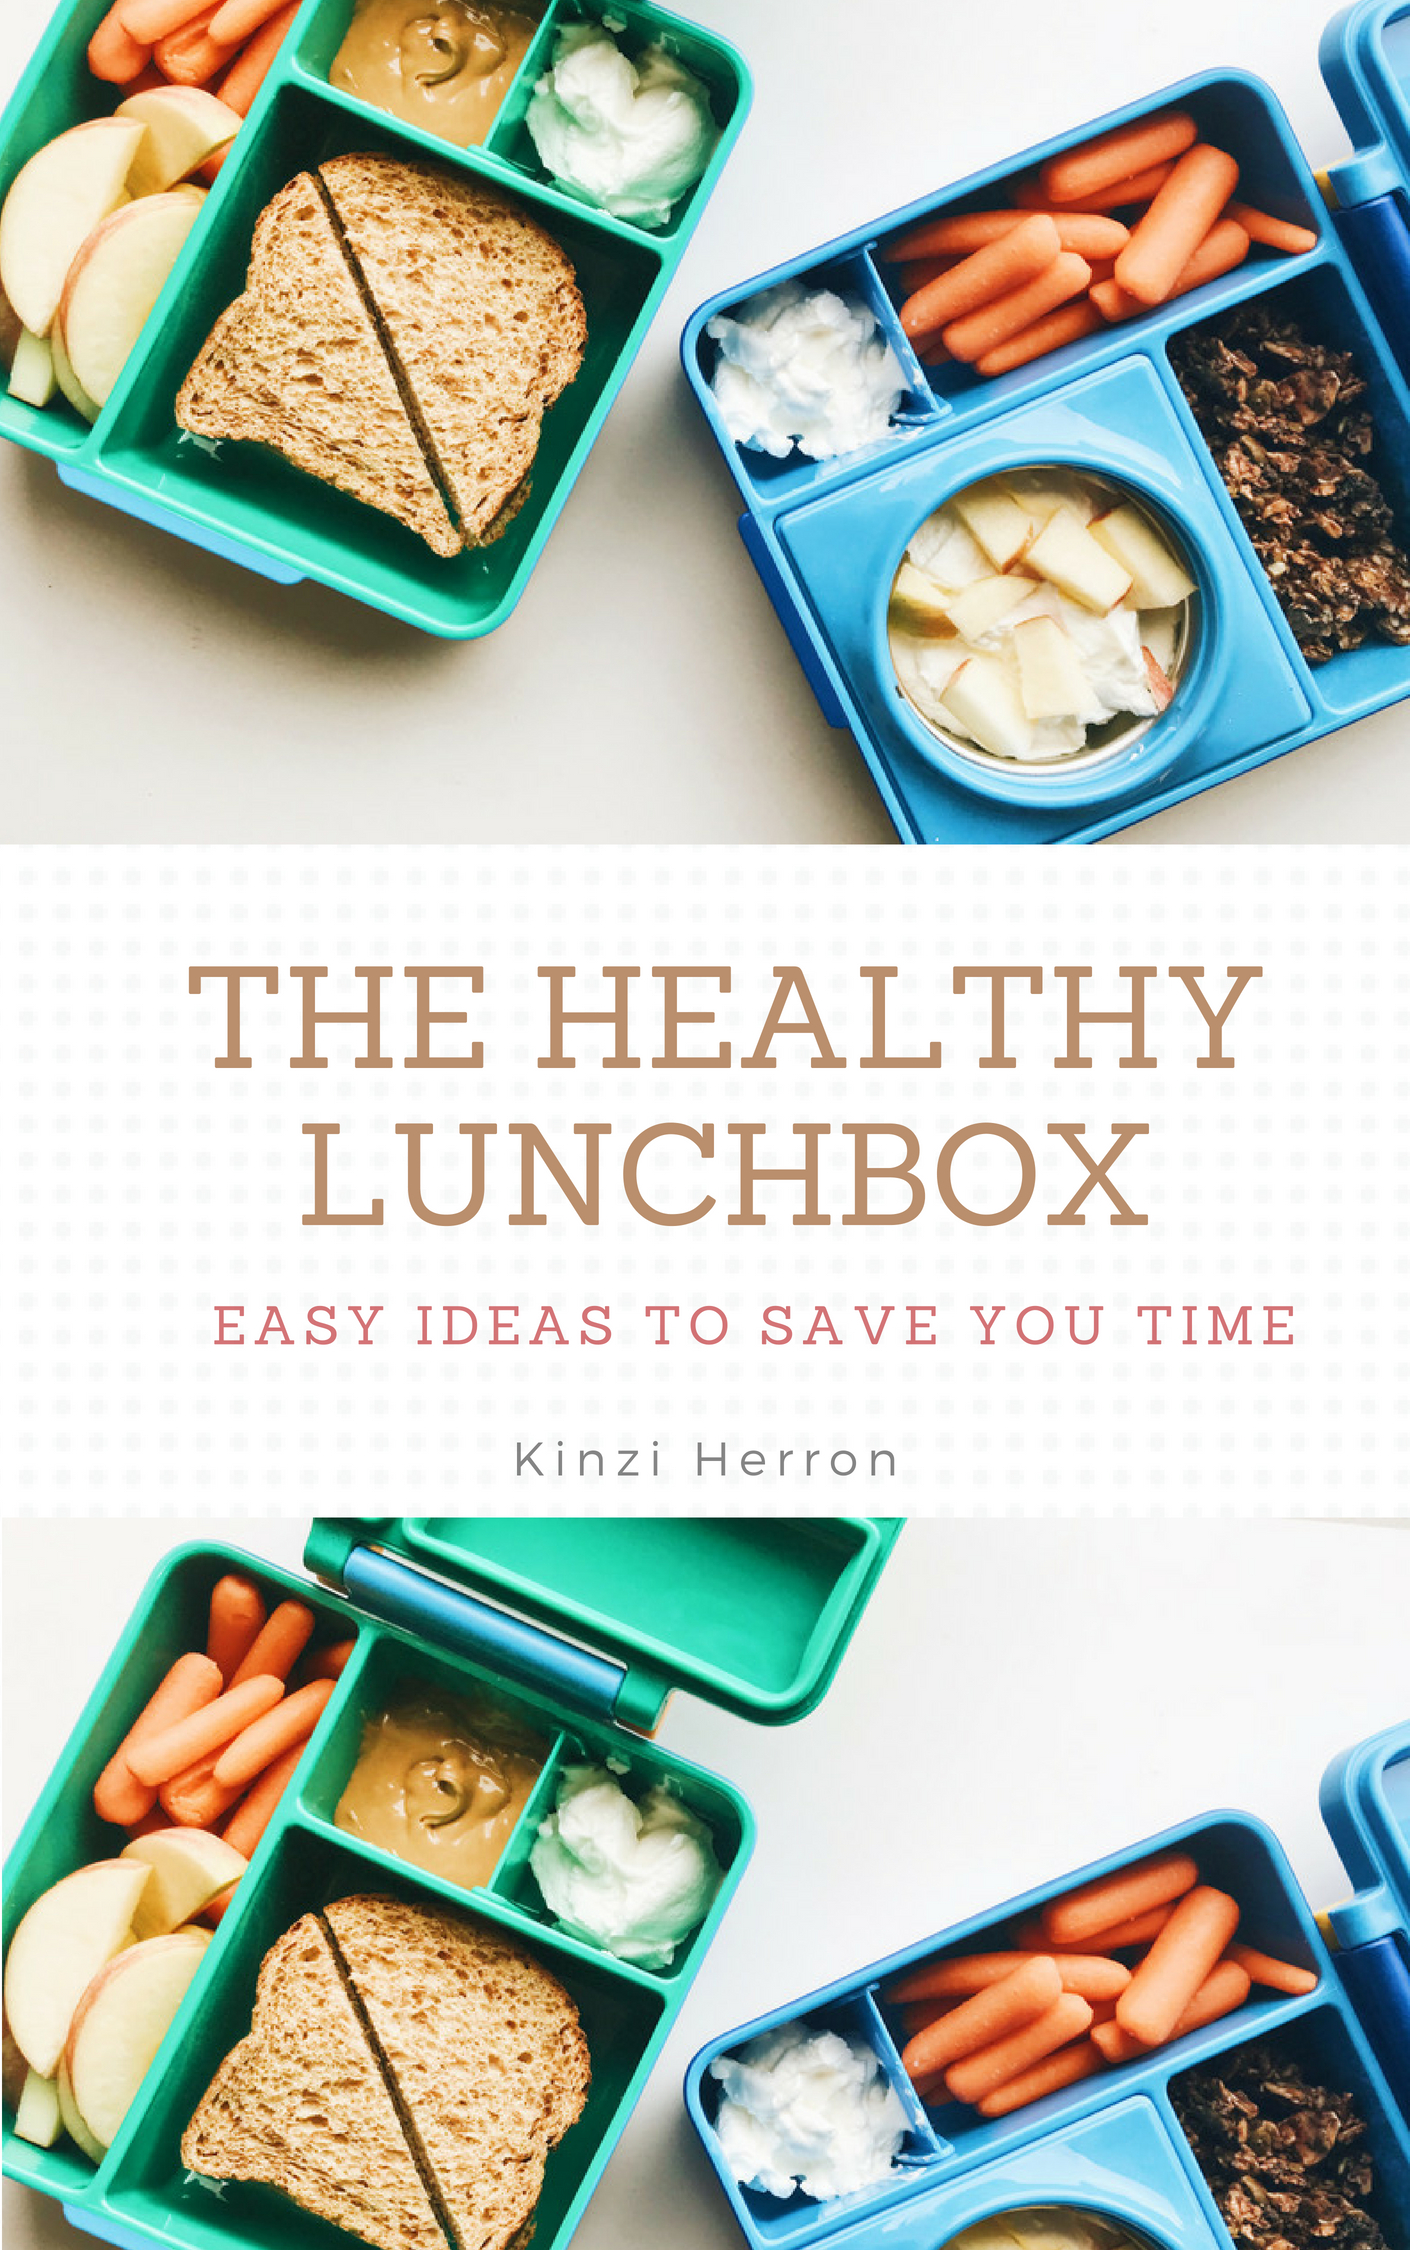 Don't Miss Out! - Sign up for the Healthy Home Help Newsletter and get your free Ebook here!